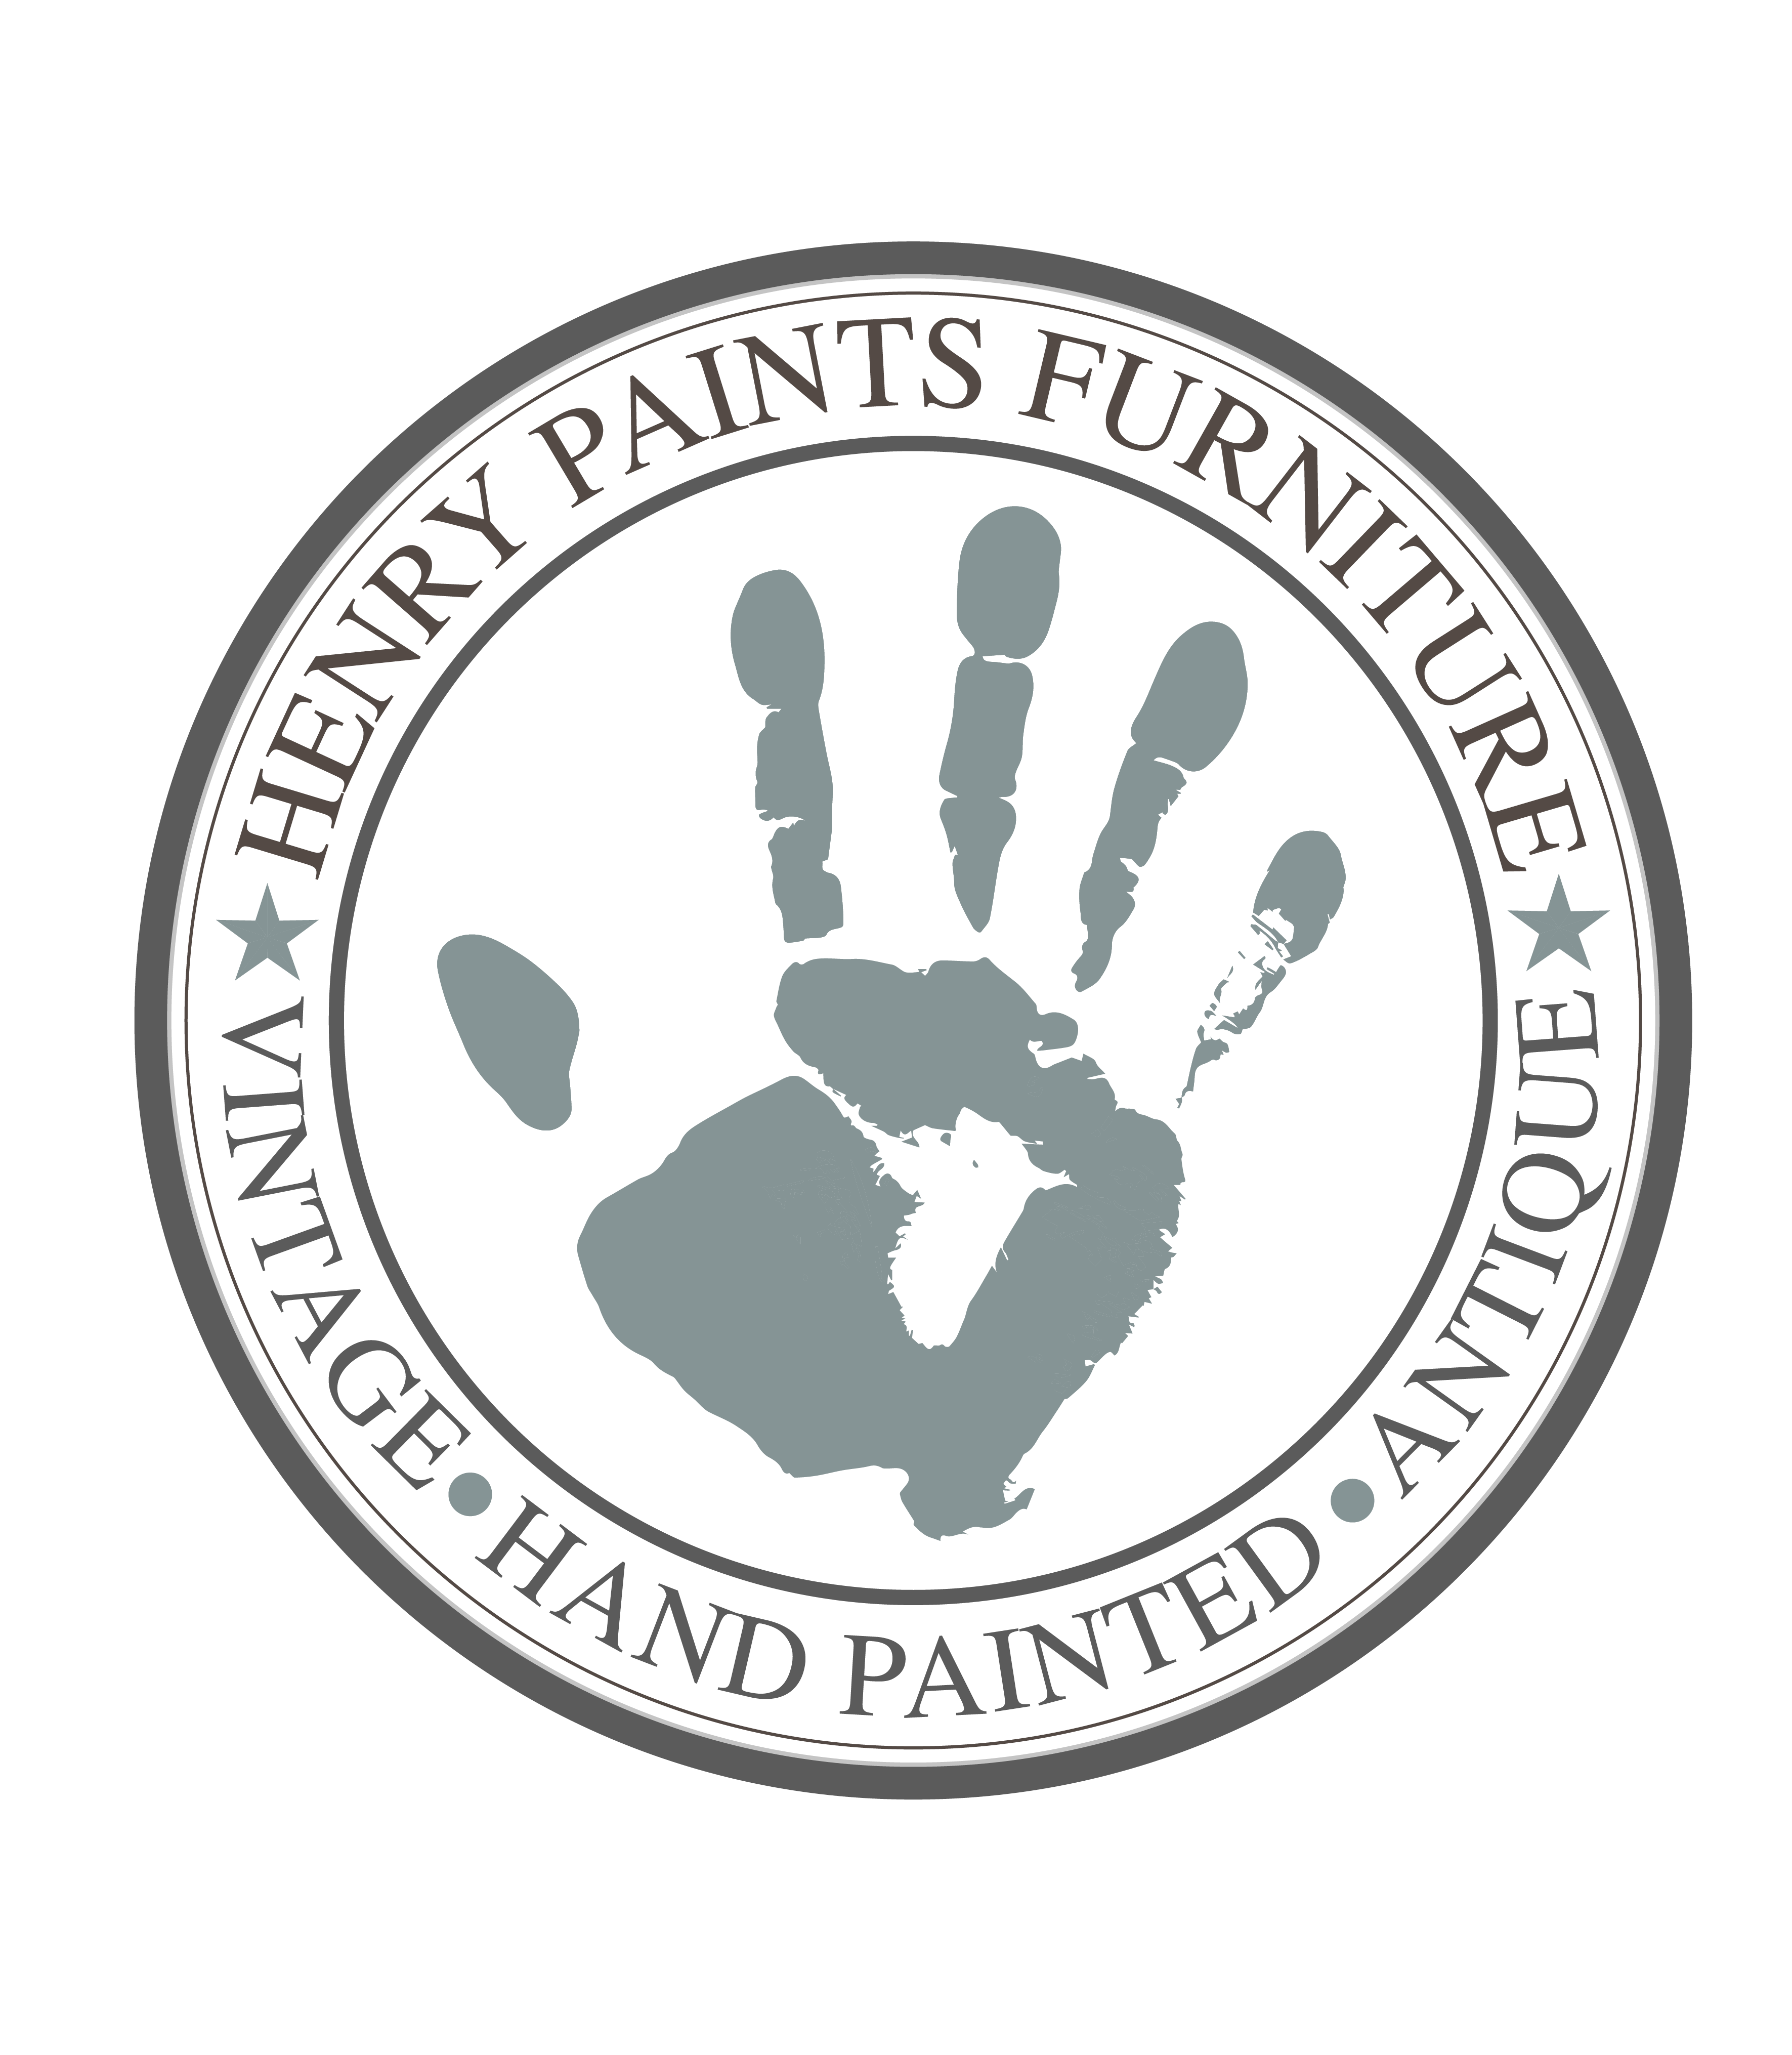 Henry Paints Furniture Logo